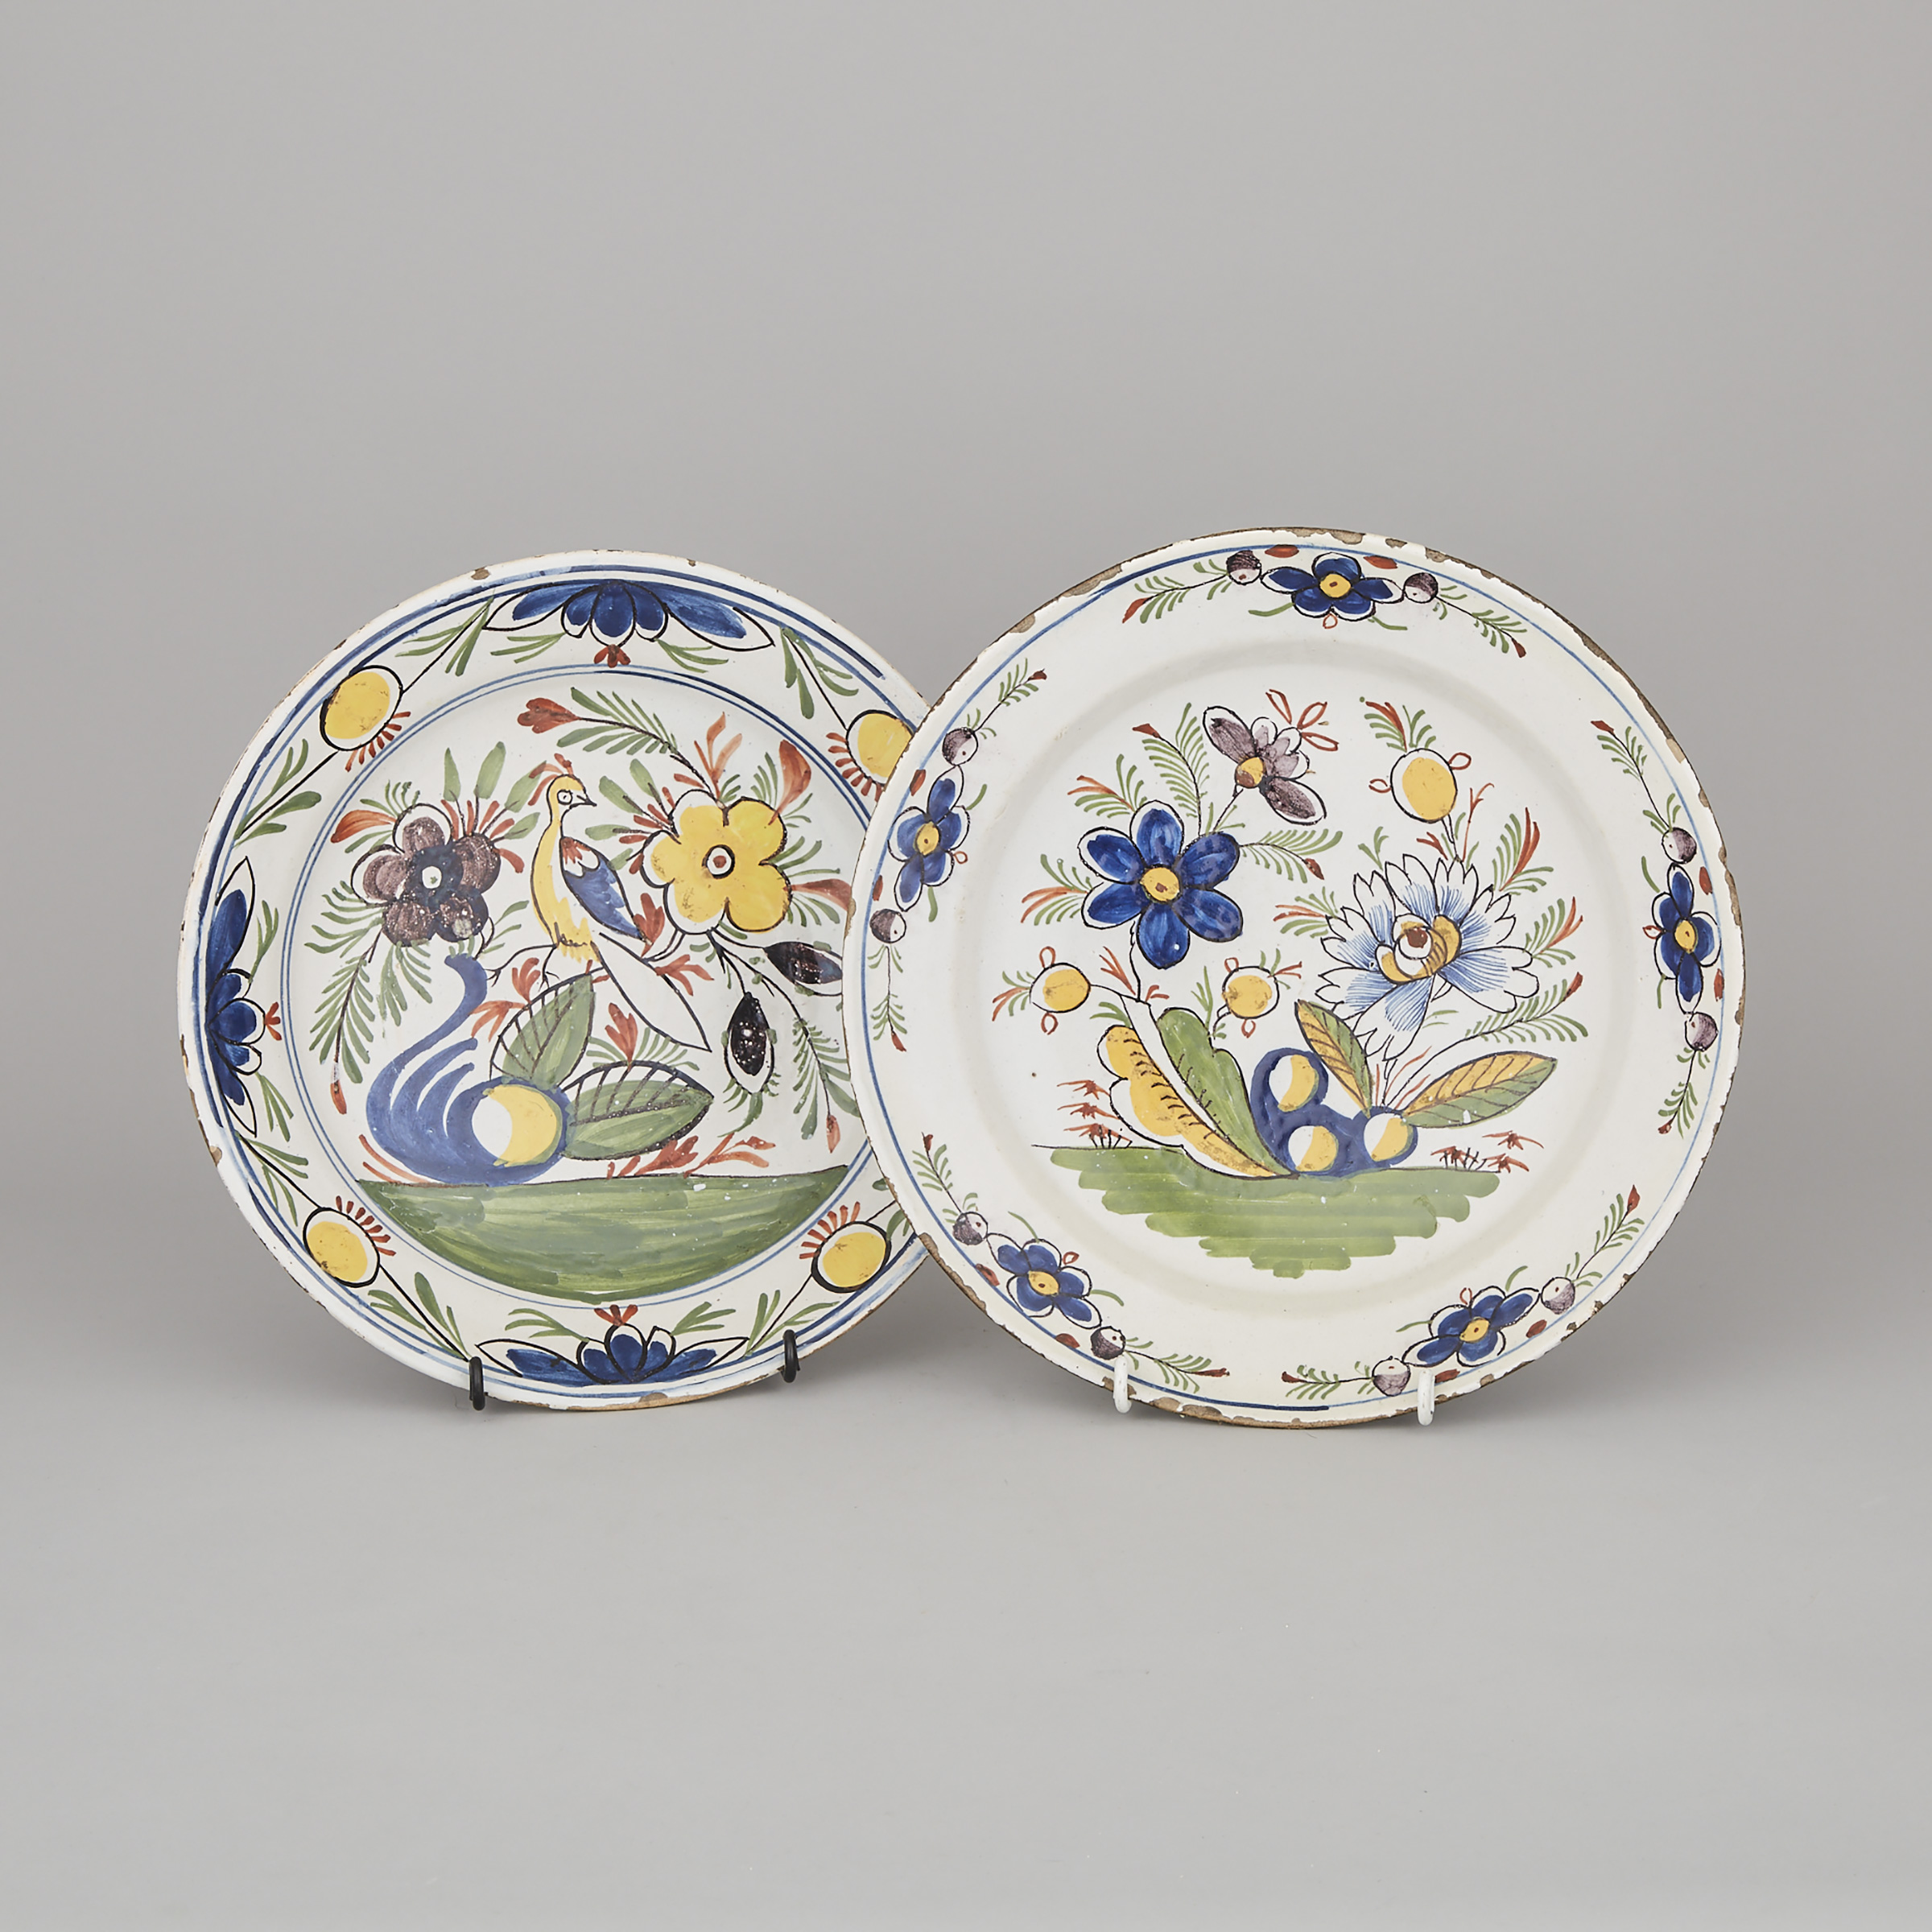 Two Continental Faience Polychrome Chargers, probably Spanish, 18th/19th century